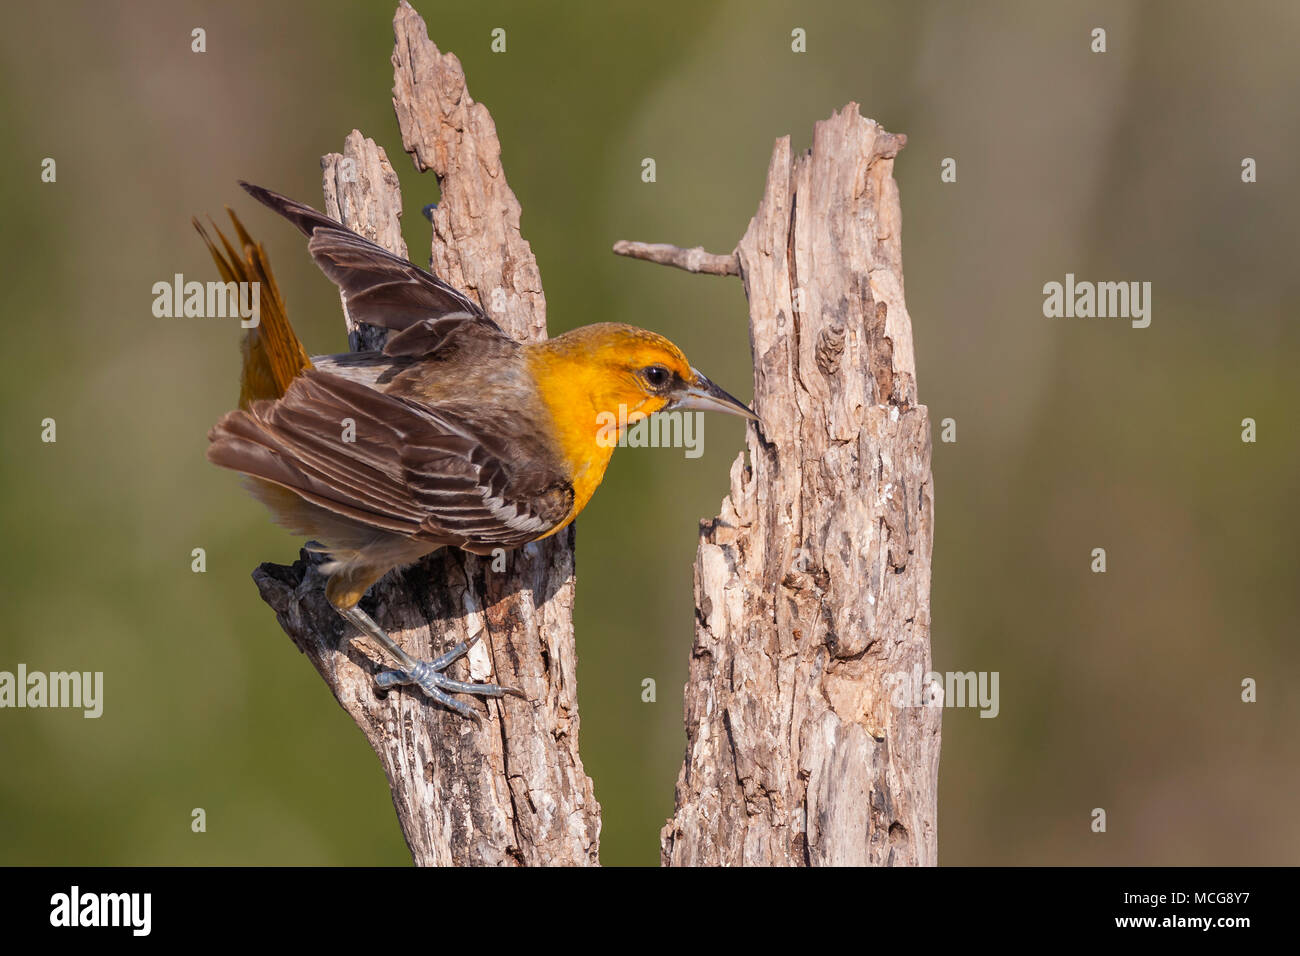 1st Spring juvenile Bullock's Oriole, Icterus bullockii, trying to keep cool during a hot summer on a ranch in South Texas. - Stock Image